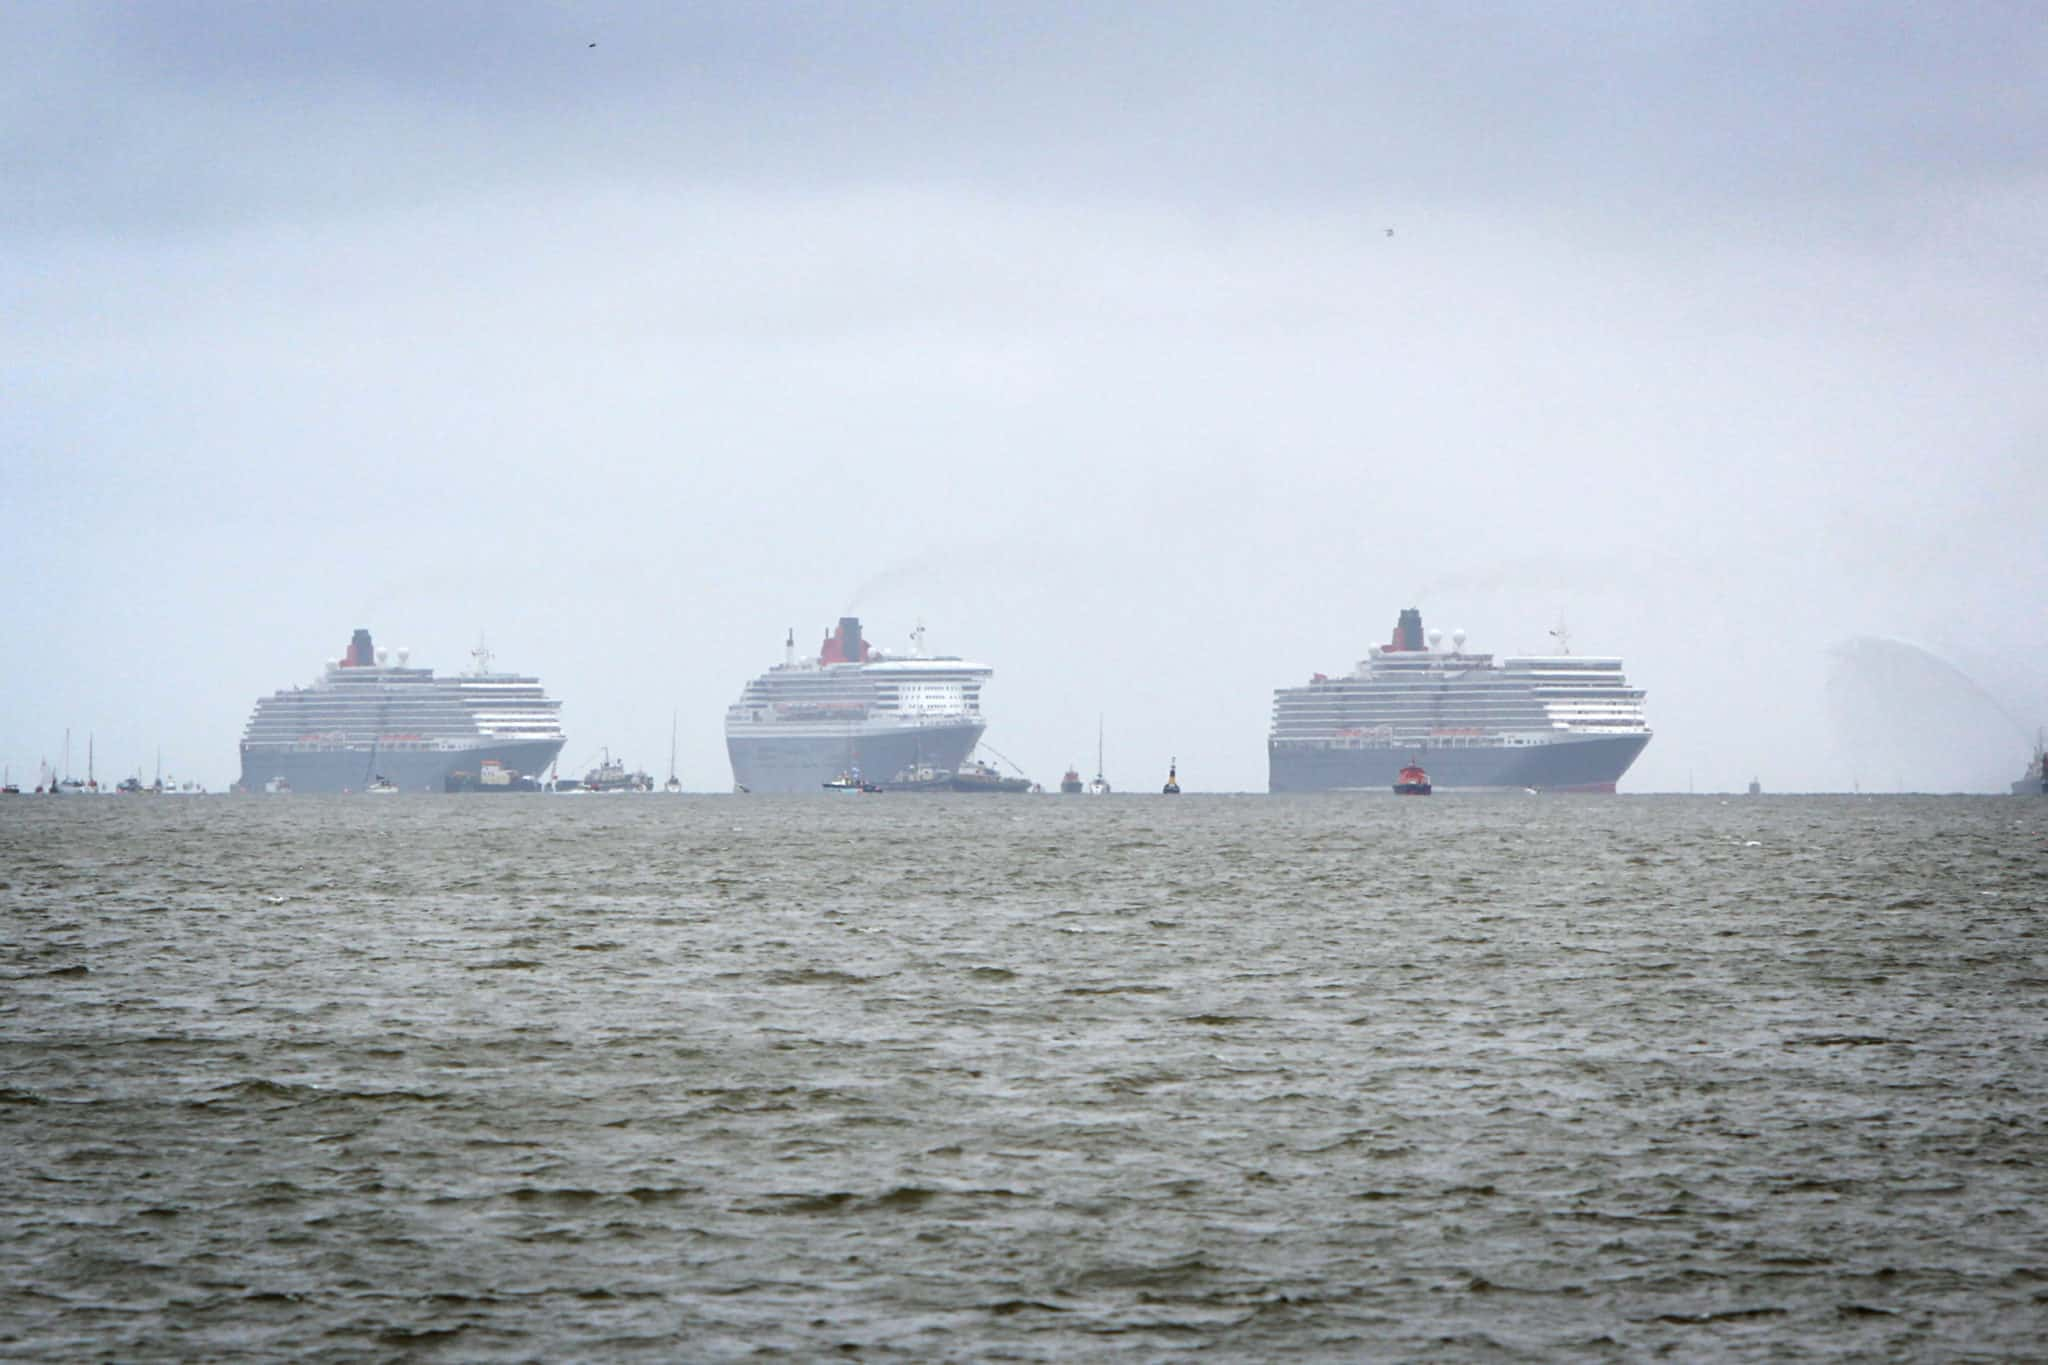 The three queens, Queen Mary 2, Queen Elizabeth and Queen Victoria emerge on the Mersey horizon ready to perform a river dance together during Cunard's 175 years celebrations. VT